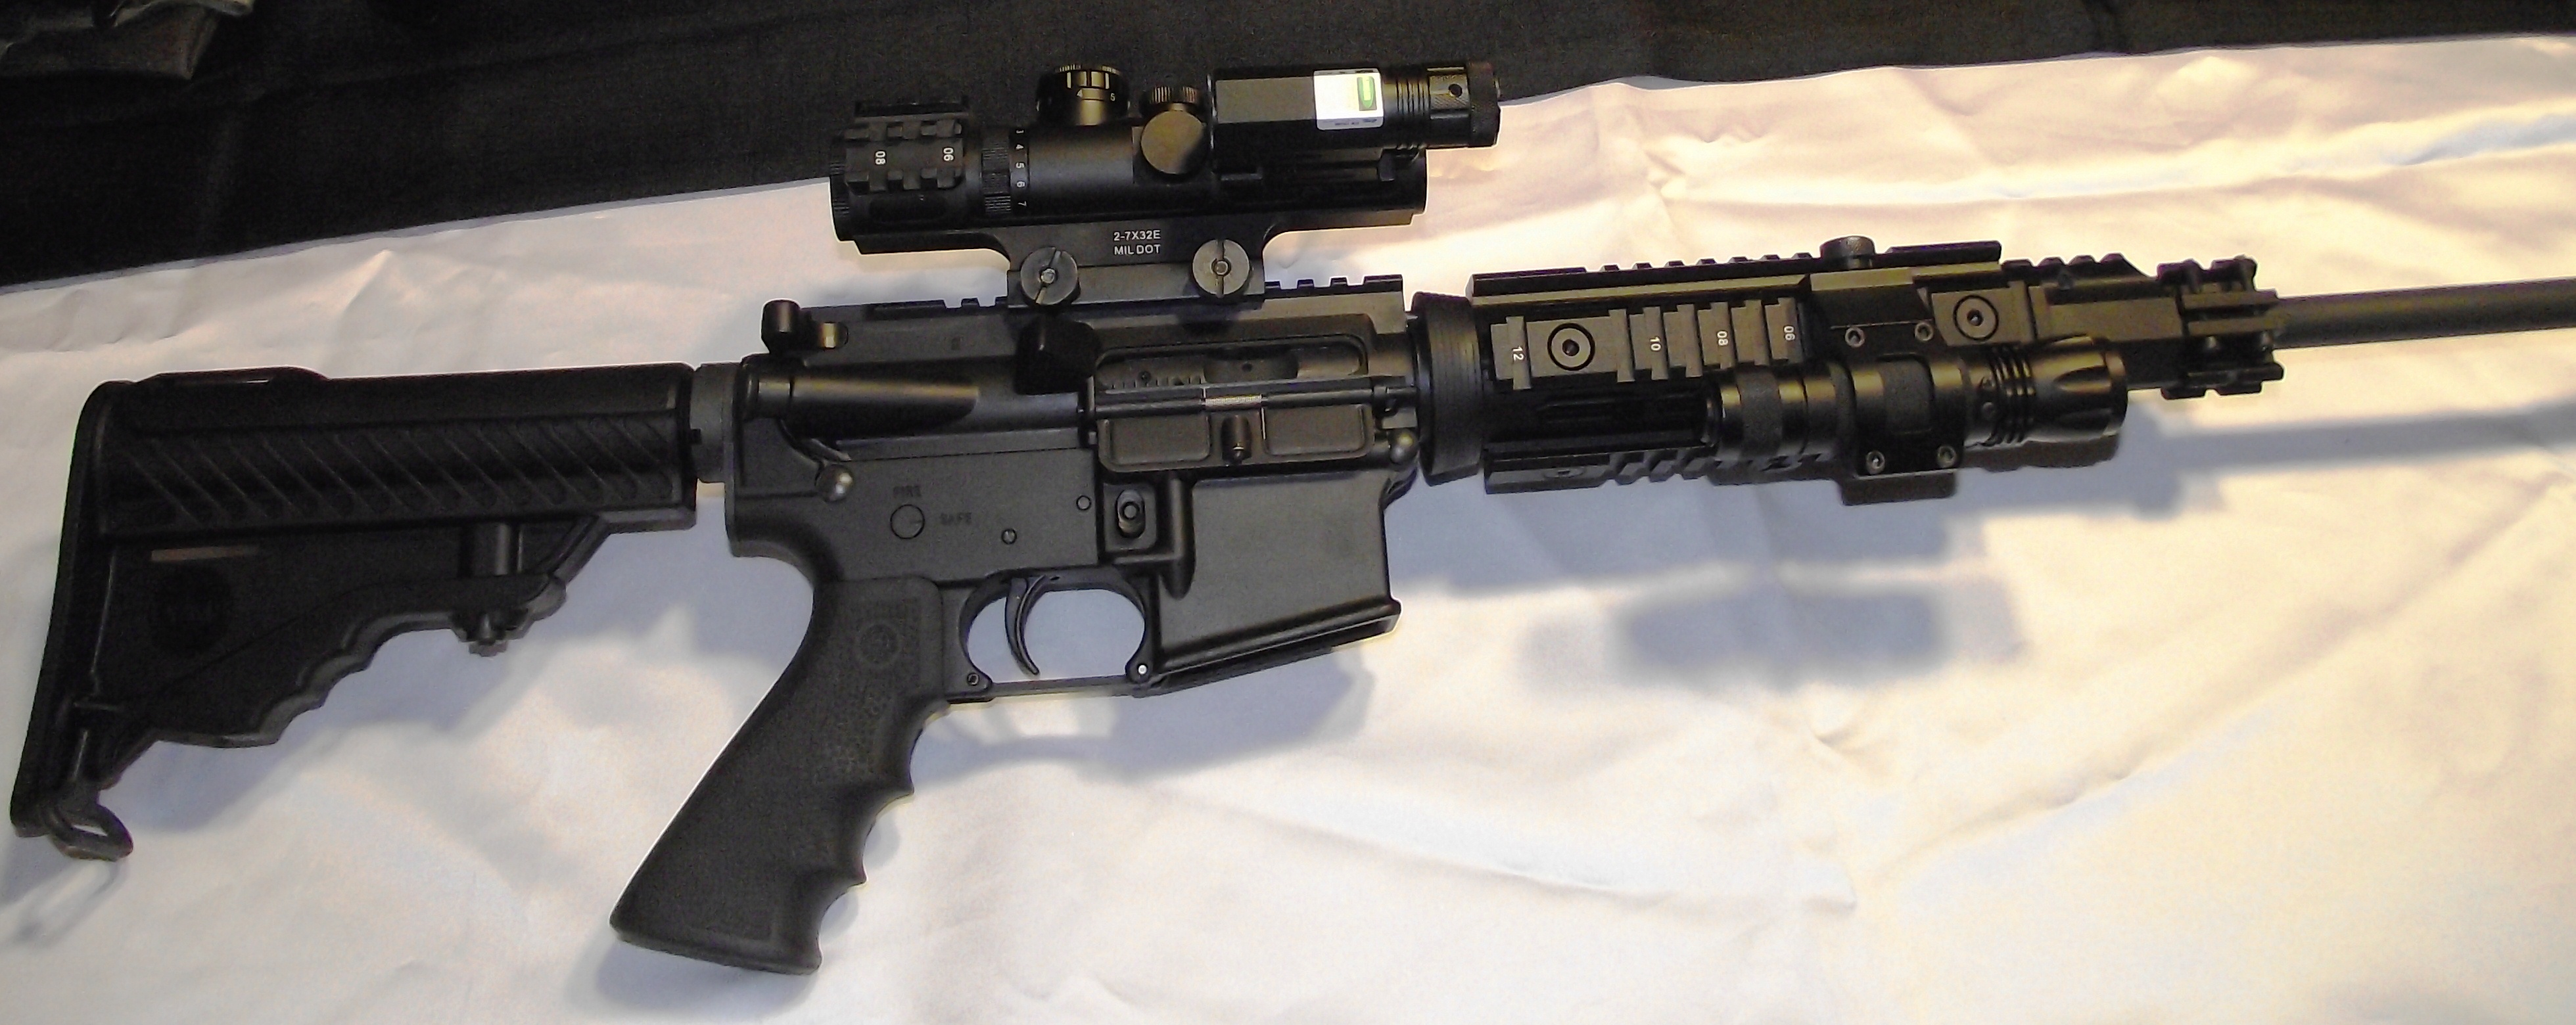 ar15 evolution tactical flashlight gun gear usa 87846